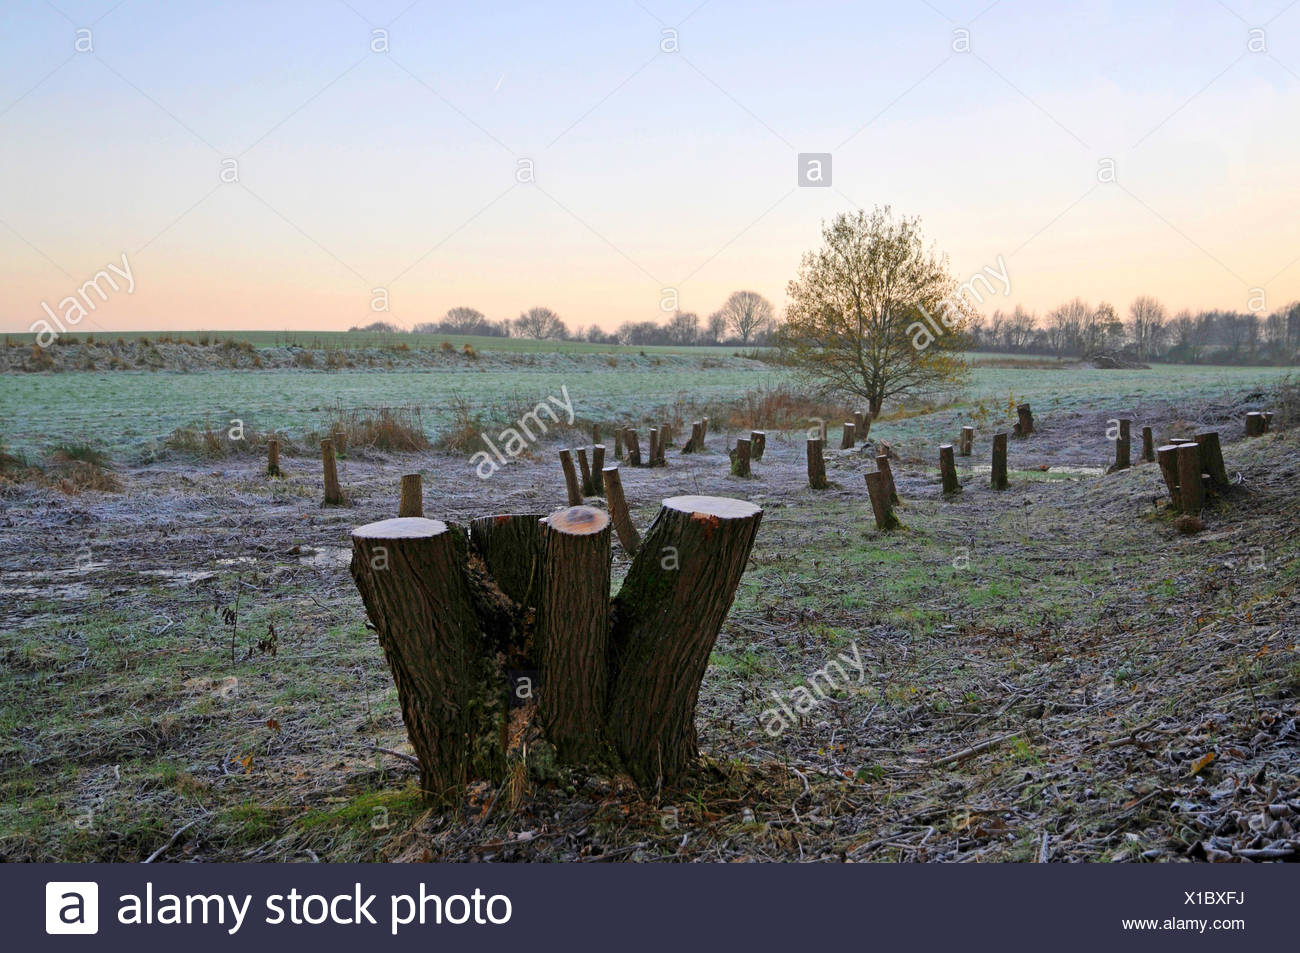 willow, osier (Salix spec.), retention basin with cutted trees, Germany, North Rhine-Westphalia - Stock Image